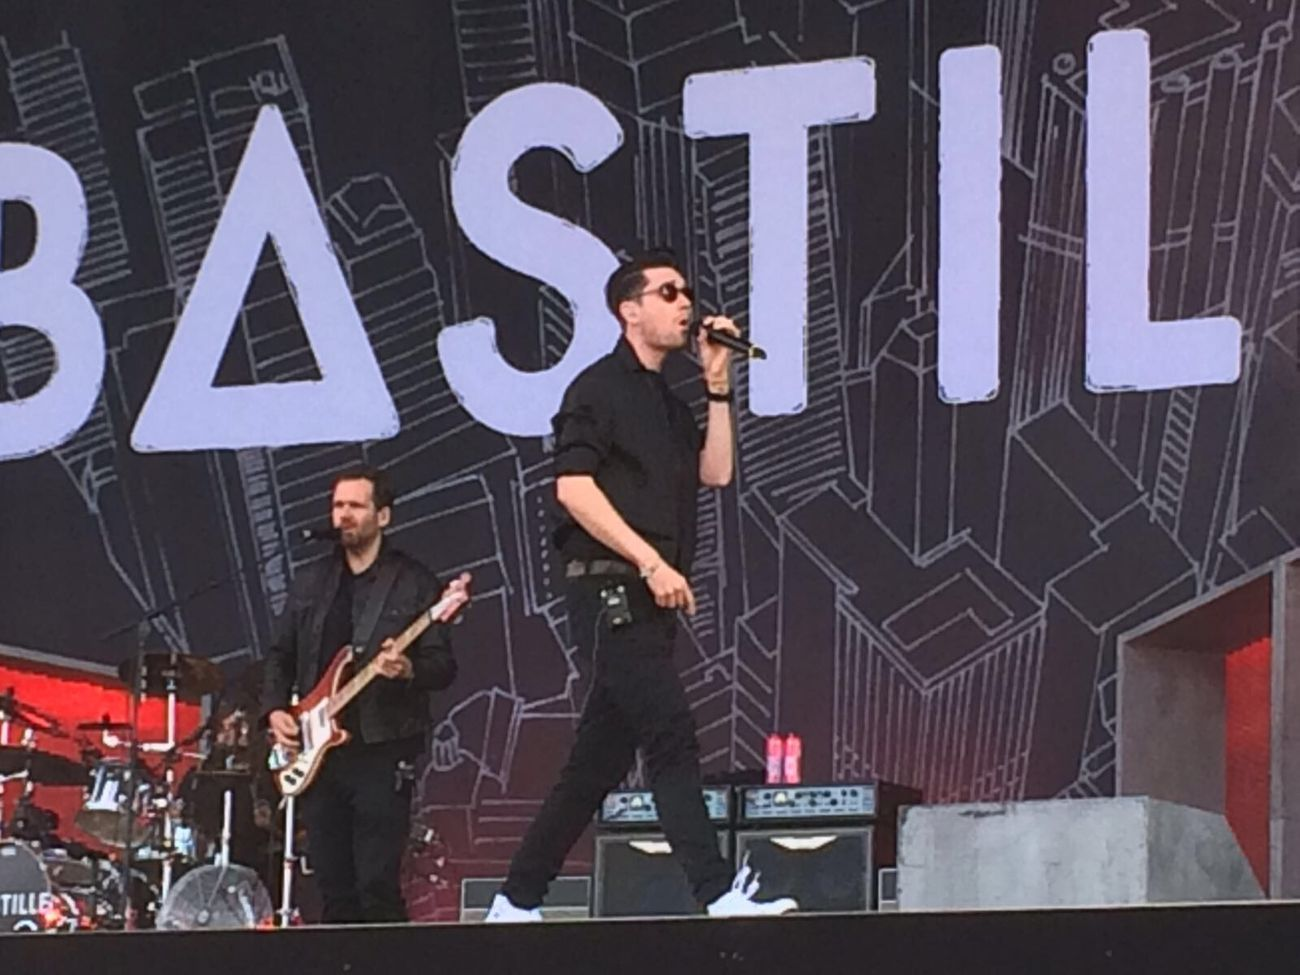 Bastille Pinkpop 2016 Festival Great Weekend  With Friends Enjoying Life Music Drinking Dancing